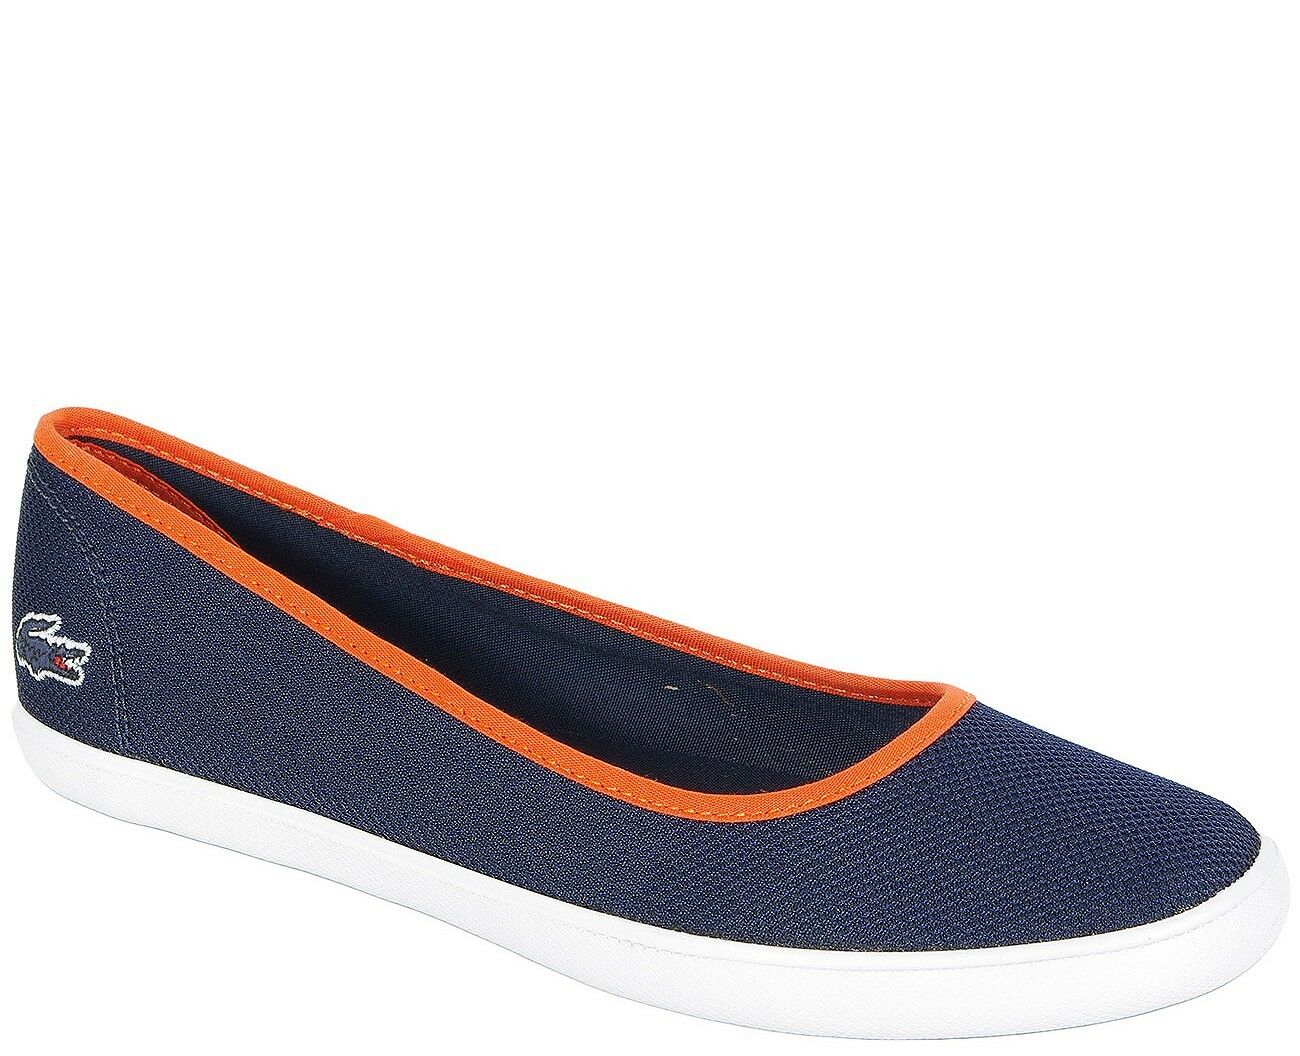 Lacoste ON SALE ballets MARTHE SLIP ON Lacoste 216 1 1003 SPW NVY TEX 9fe906